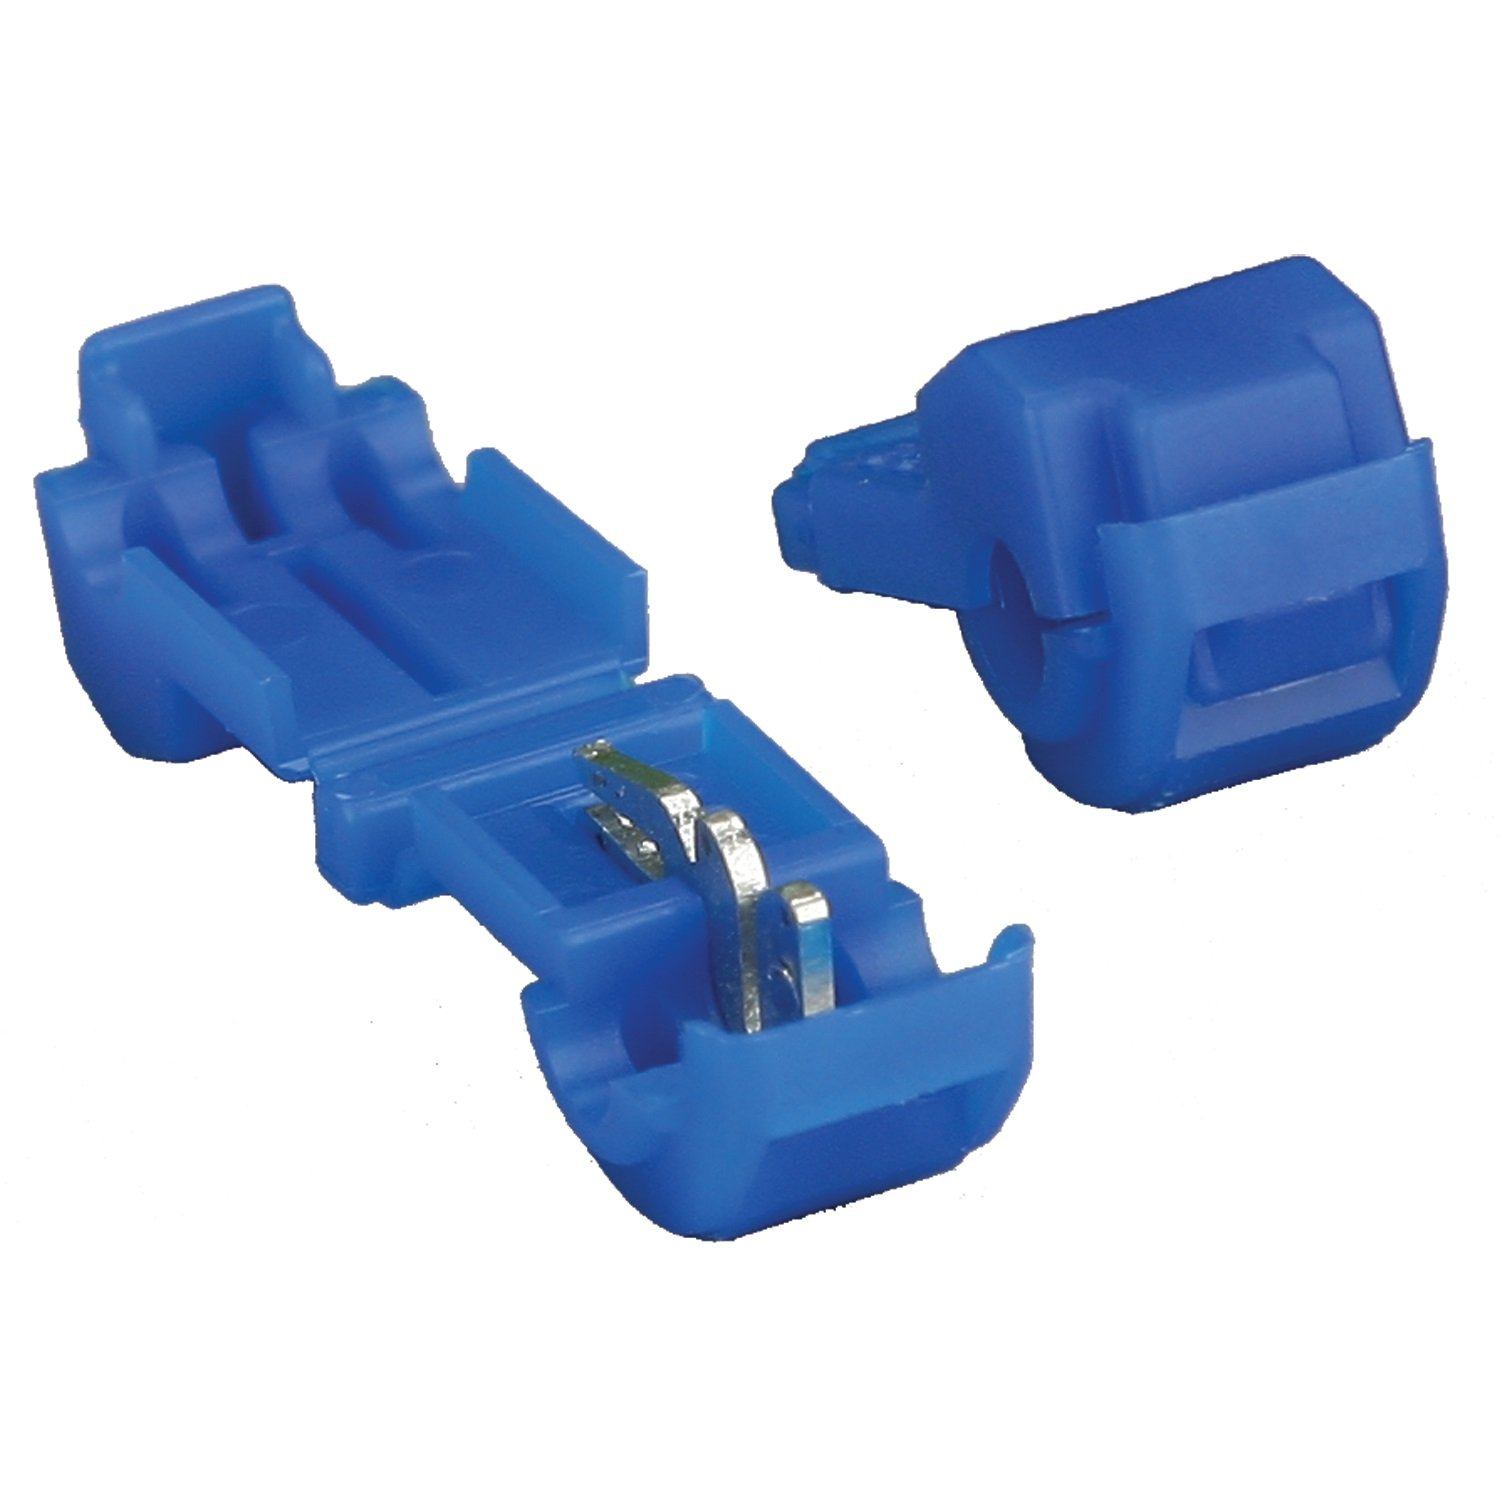 Install Bay 3M T-Tap Connector 16/14 Gauge, 100-Pack (Blue) Metra Electronics Corporation 3MBTT